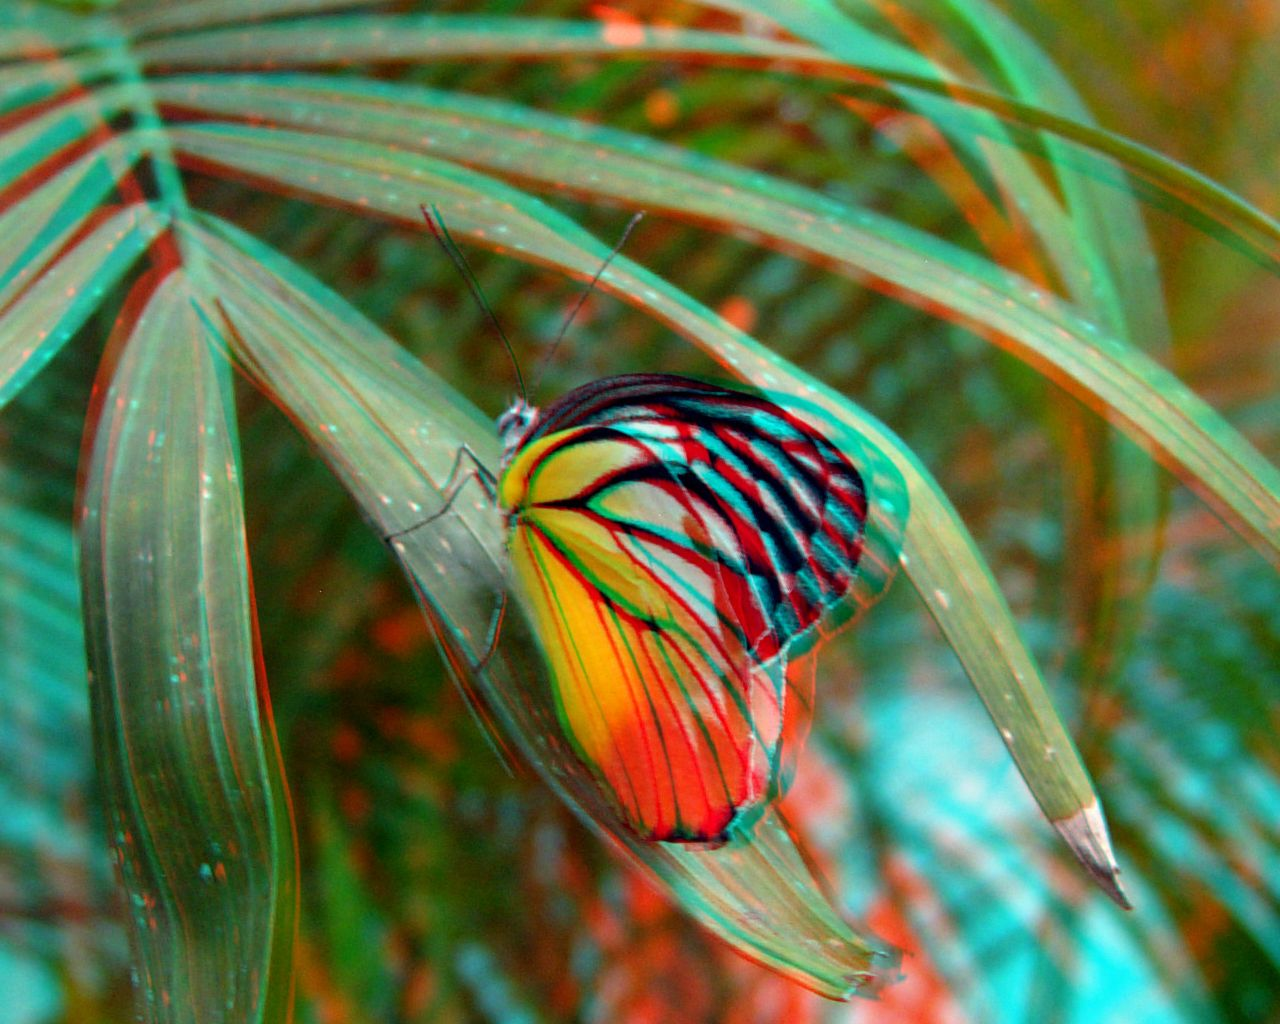 anaglyph nature Google Search Fish pet, Plant leaves